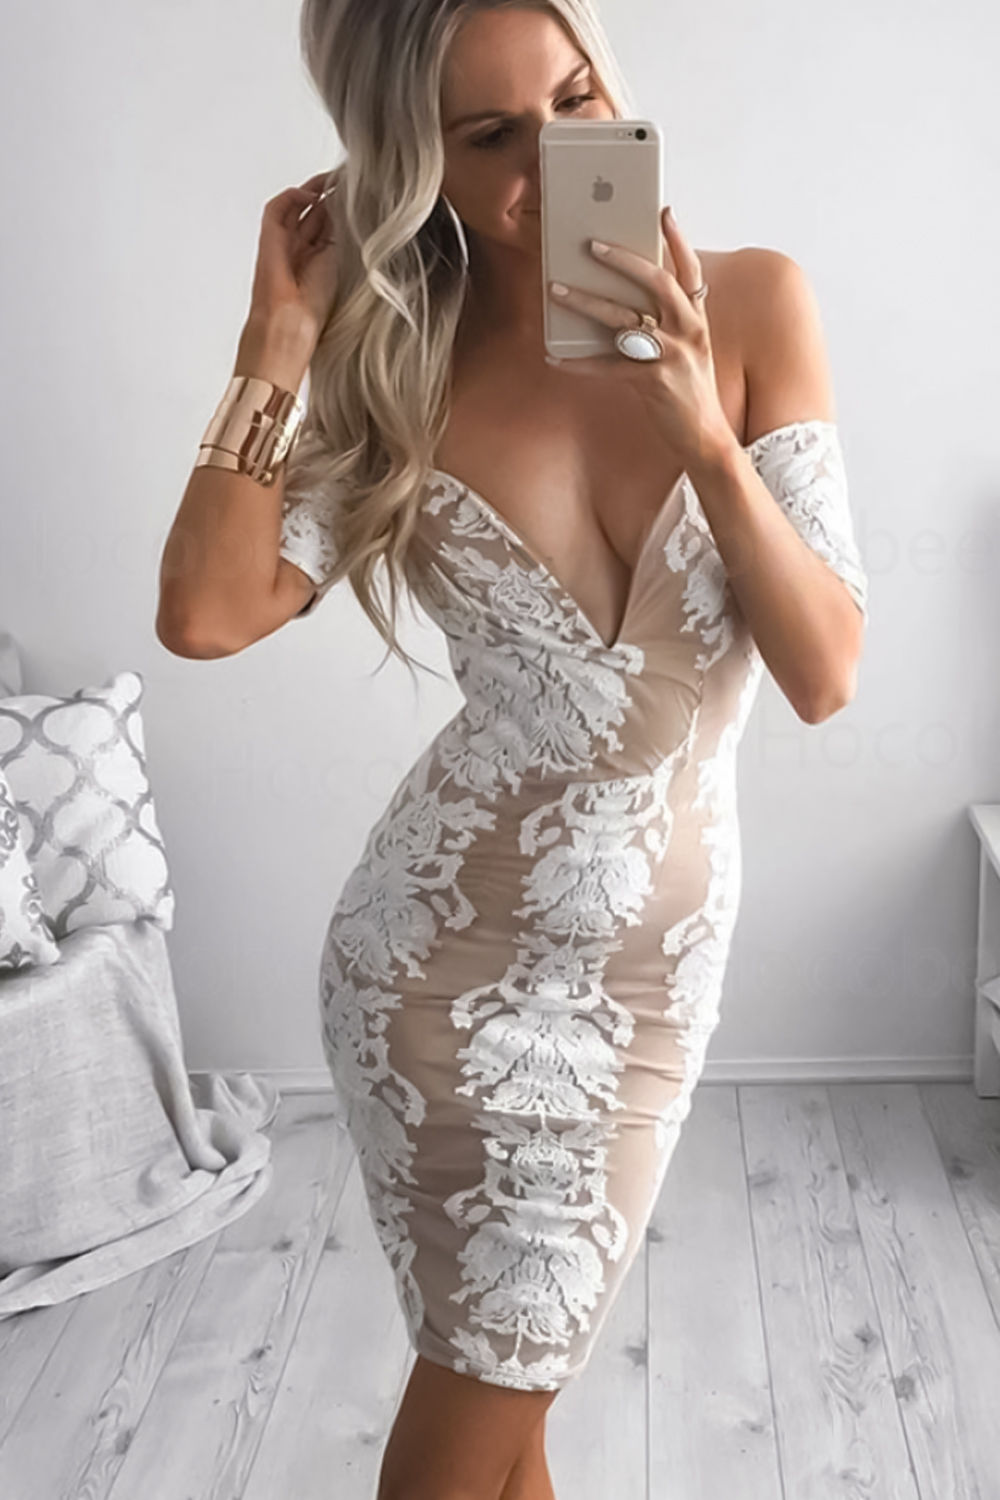 woman in a tight lace dress is taking a selfie